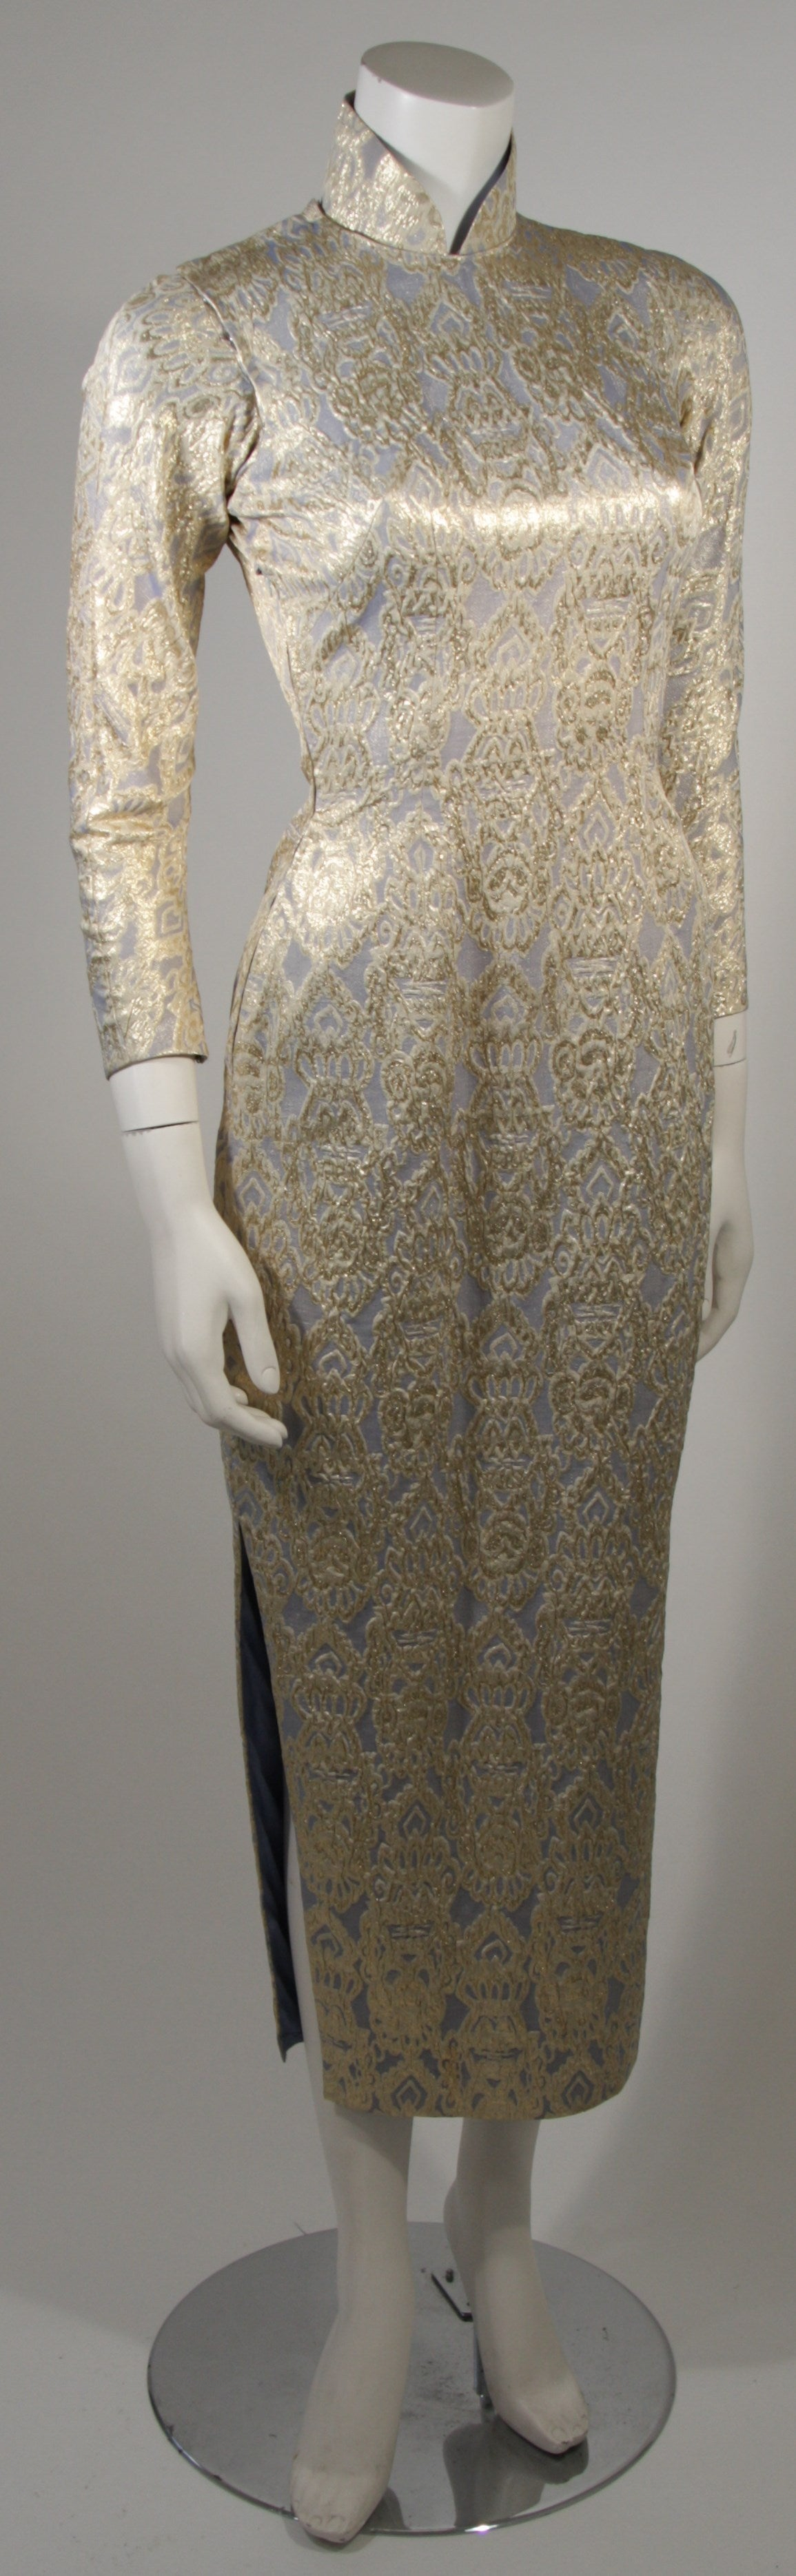 Oriental Inspired Pale Blue & Gold Silk Brocade Cheongsam Dress Sz 0-2 For Sale 1